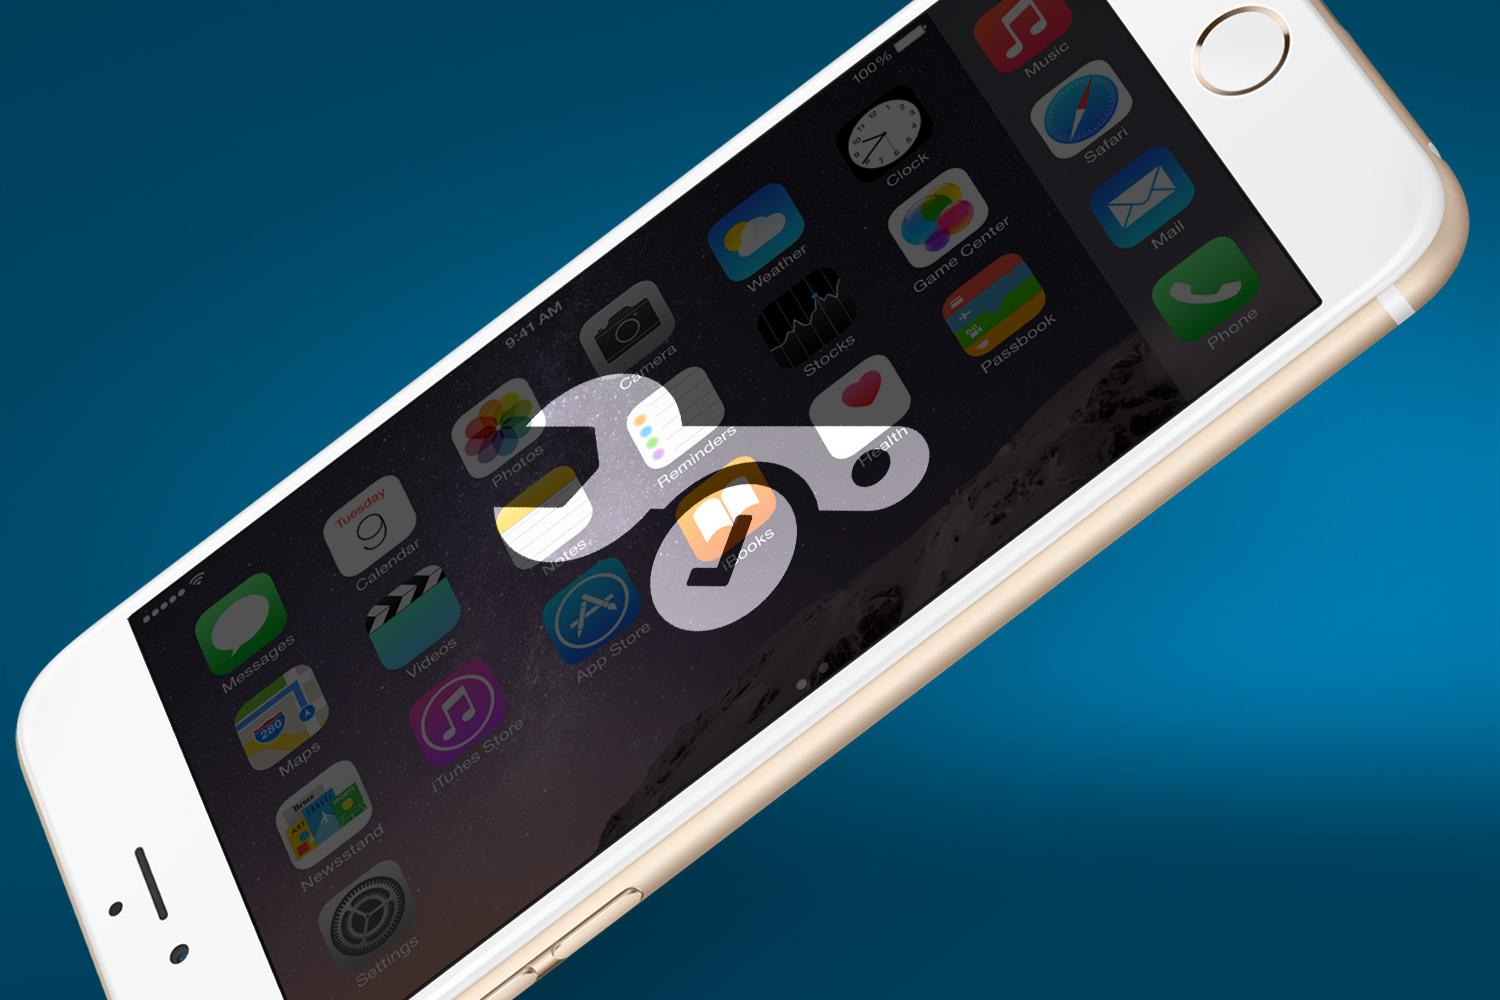 Ad02 Wallpaper Apple Ios8 Iphone6 Plus: IOS 8: 35 Problems And Bugs And How To Fix Them